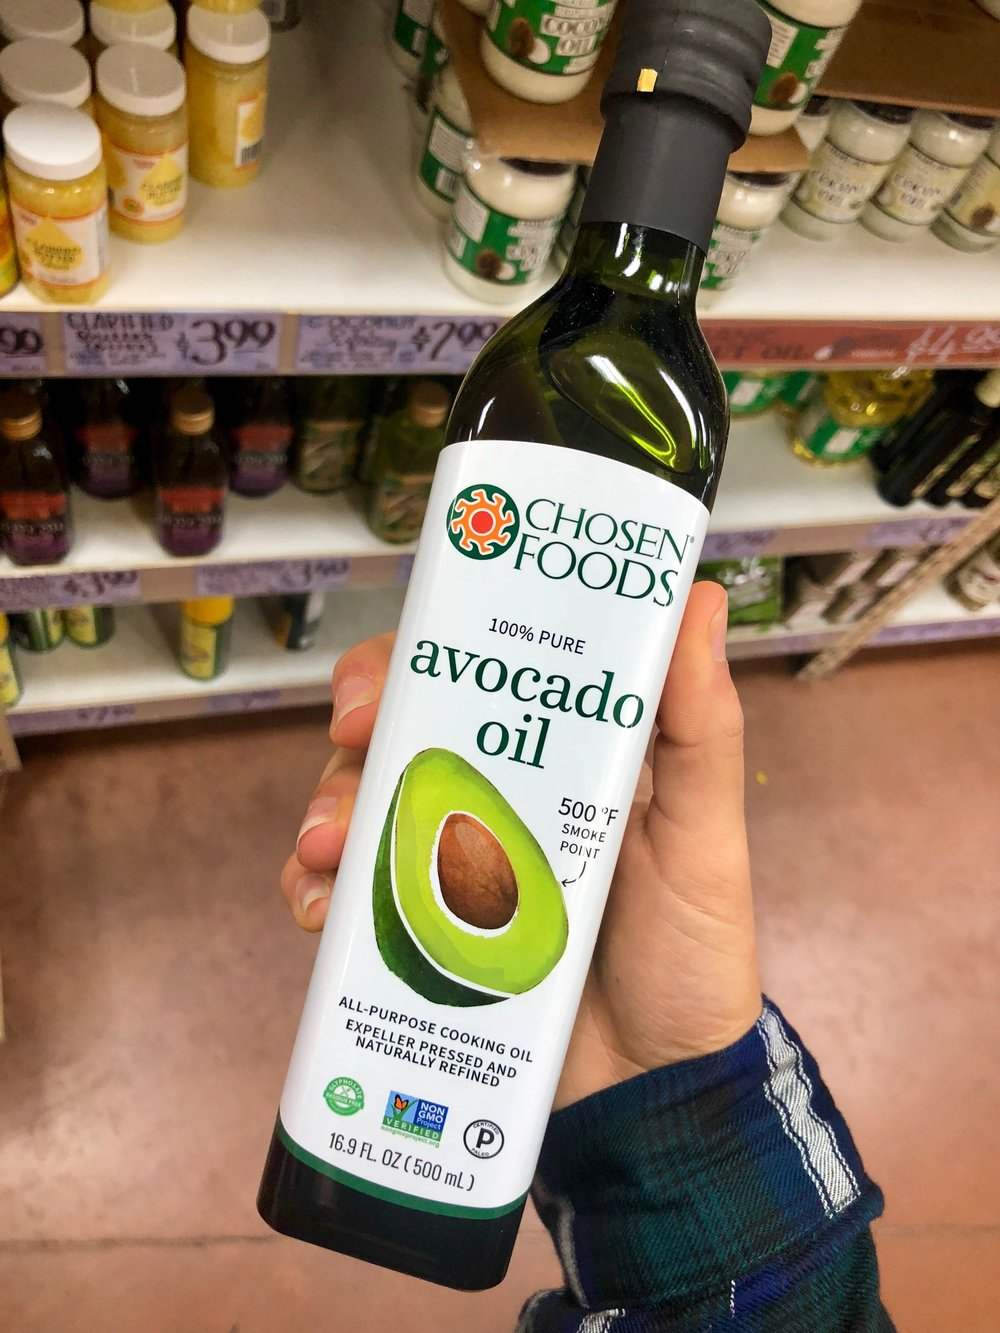 Avocado Oil is a good flavor alternative to olive oil and has a higher smoke point than olive oil, but still an unsaturated fat which is the good kind!! A higher smoke point means it will not burn or smoke until it reaches 520 F ( 271 C ), which is ideal for searing or frying meats and vegetables. Also it's really cheap here compared to regular grocery stores, also can be found at Costco for cheap too!